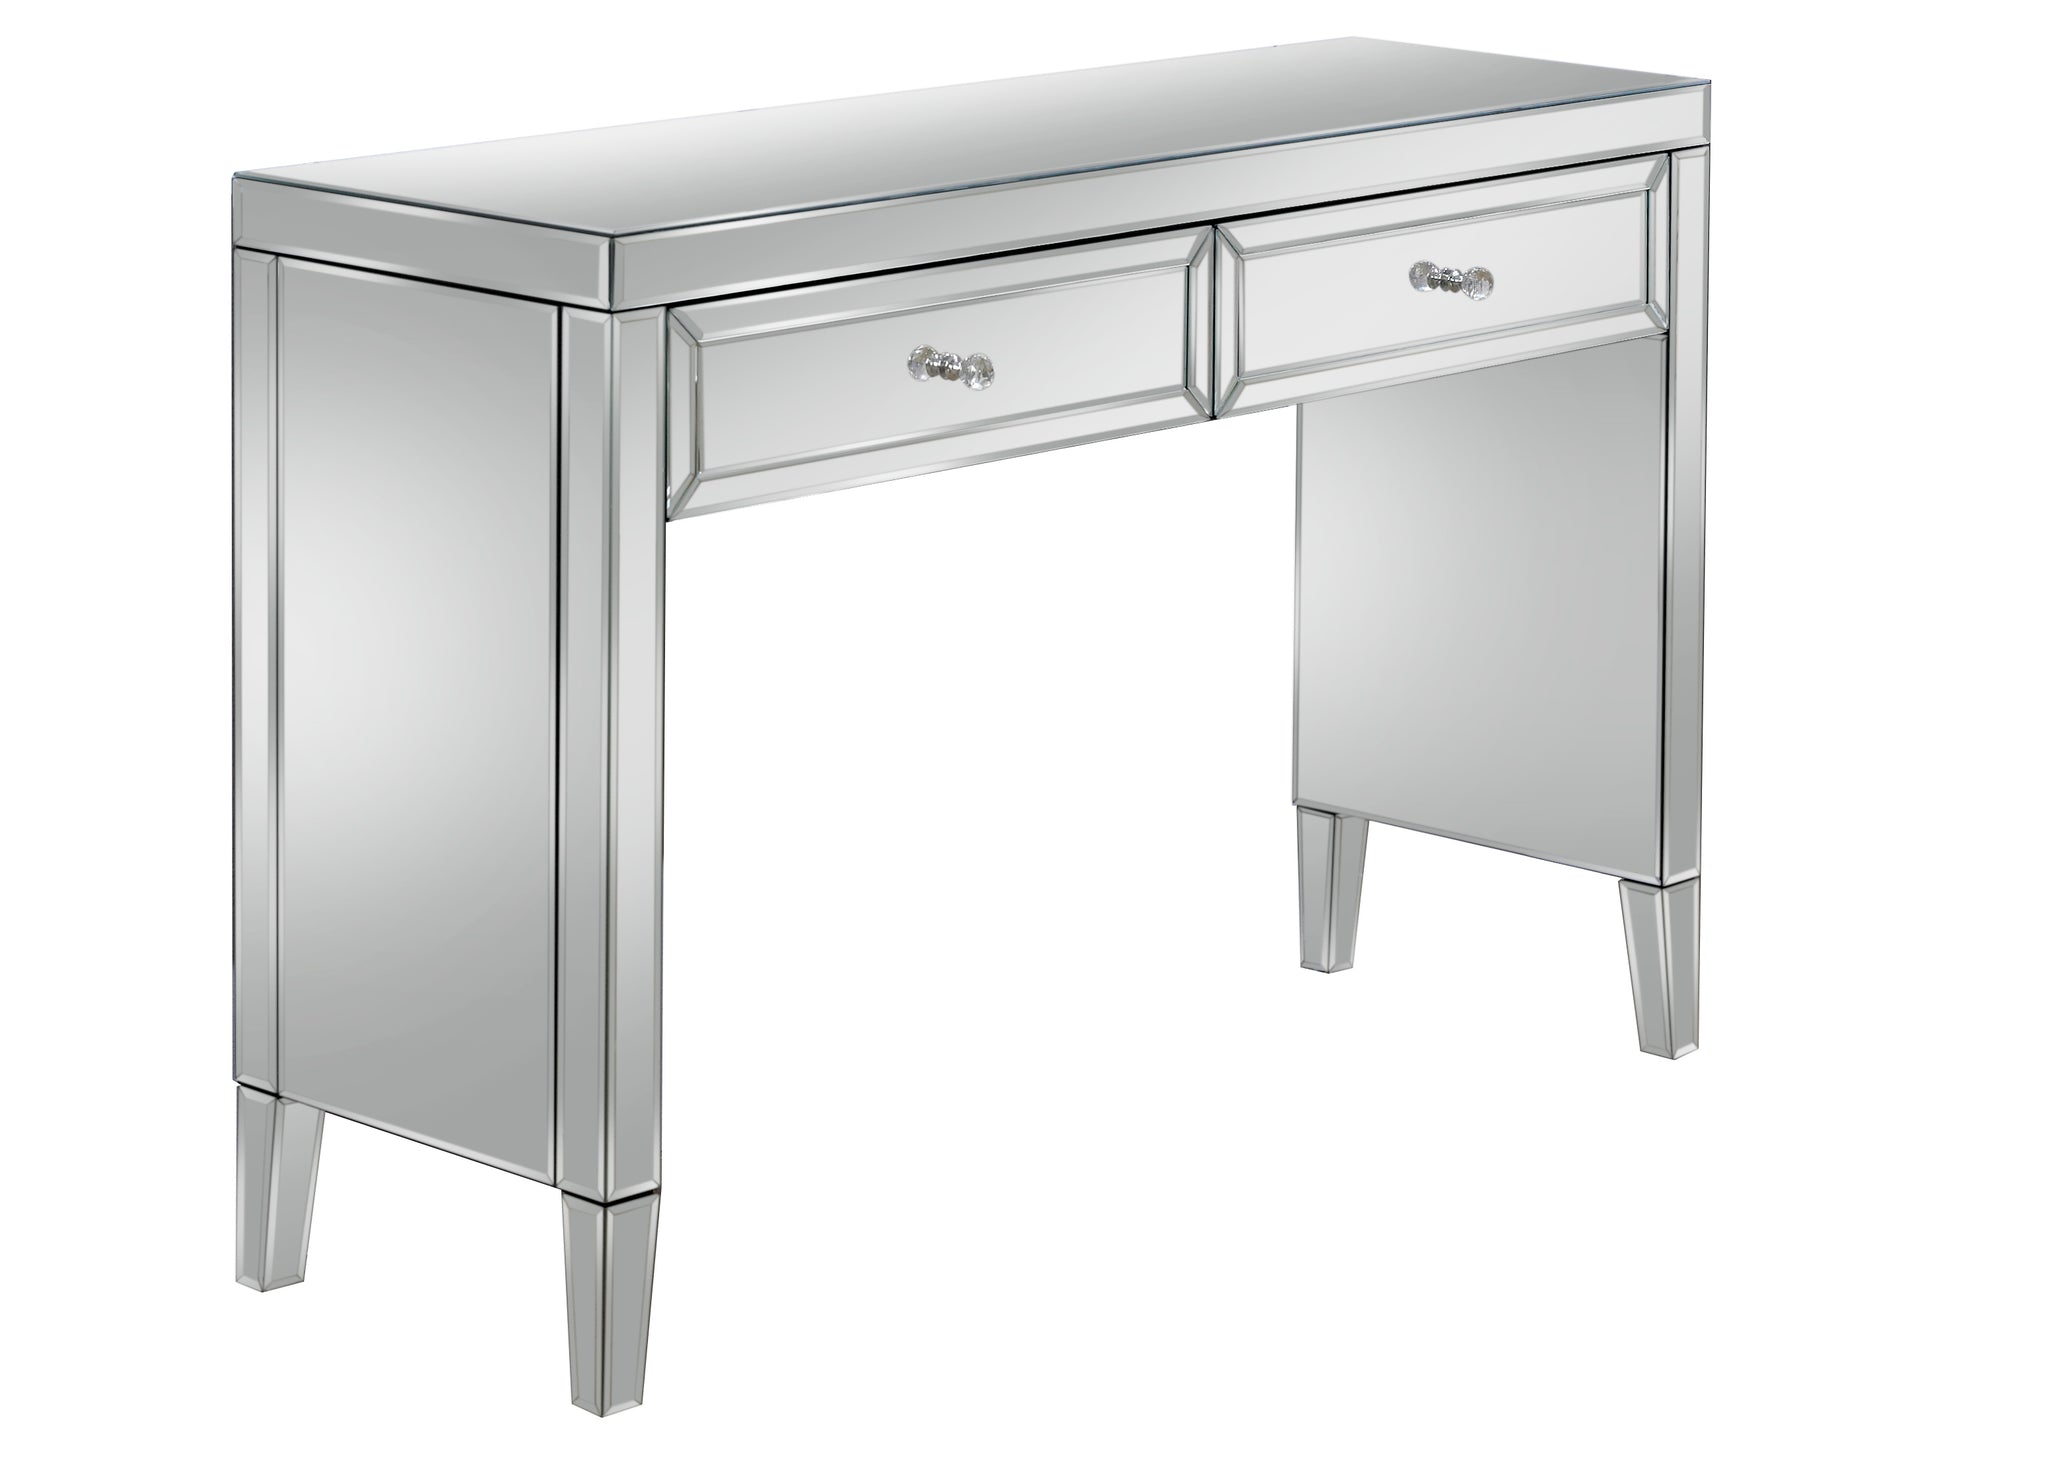 Turia 2 Drawer Sideboard - Ezzo